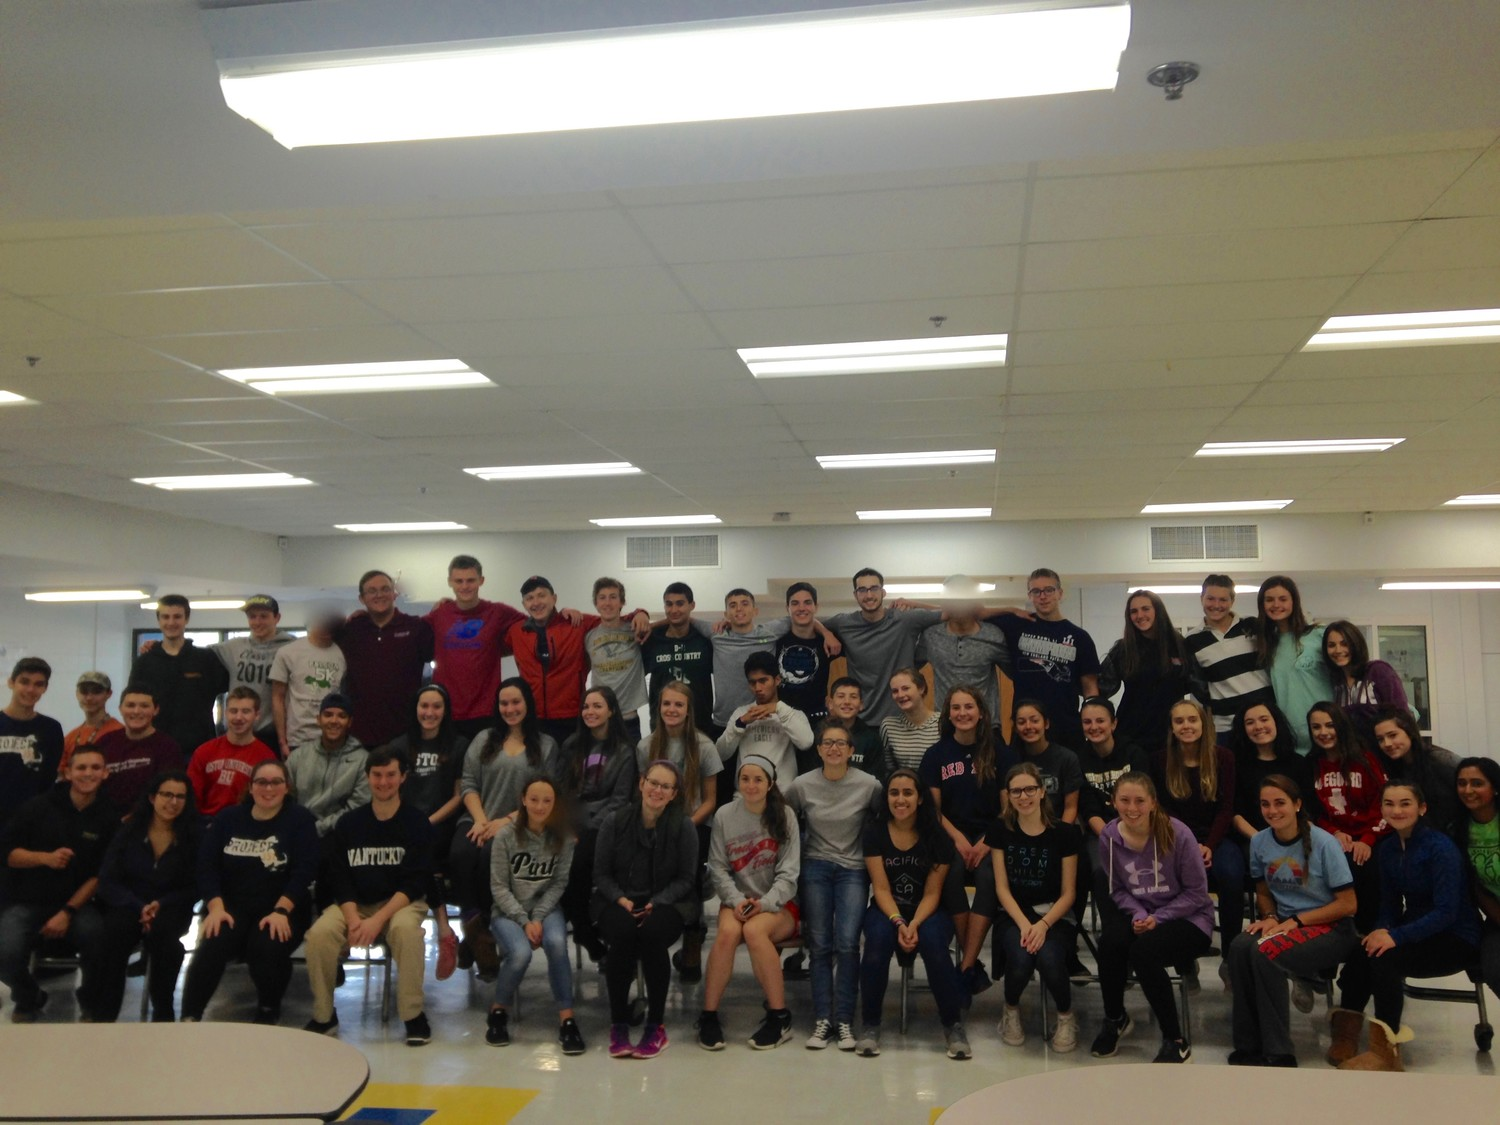 Student government and other students helped to sort canned goods on Saturday to distribute to the community""